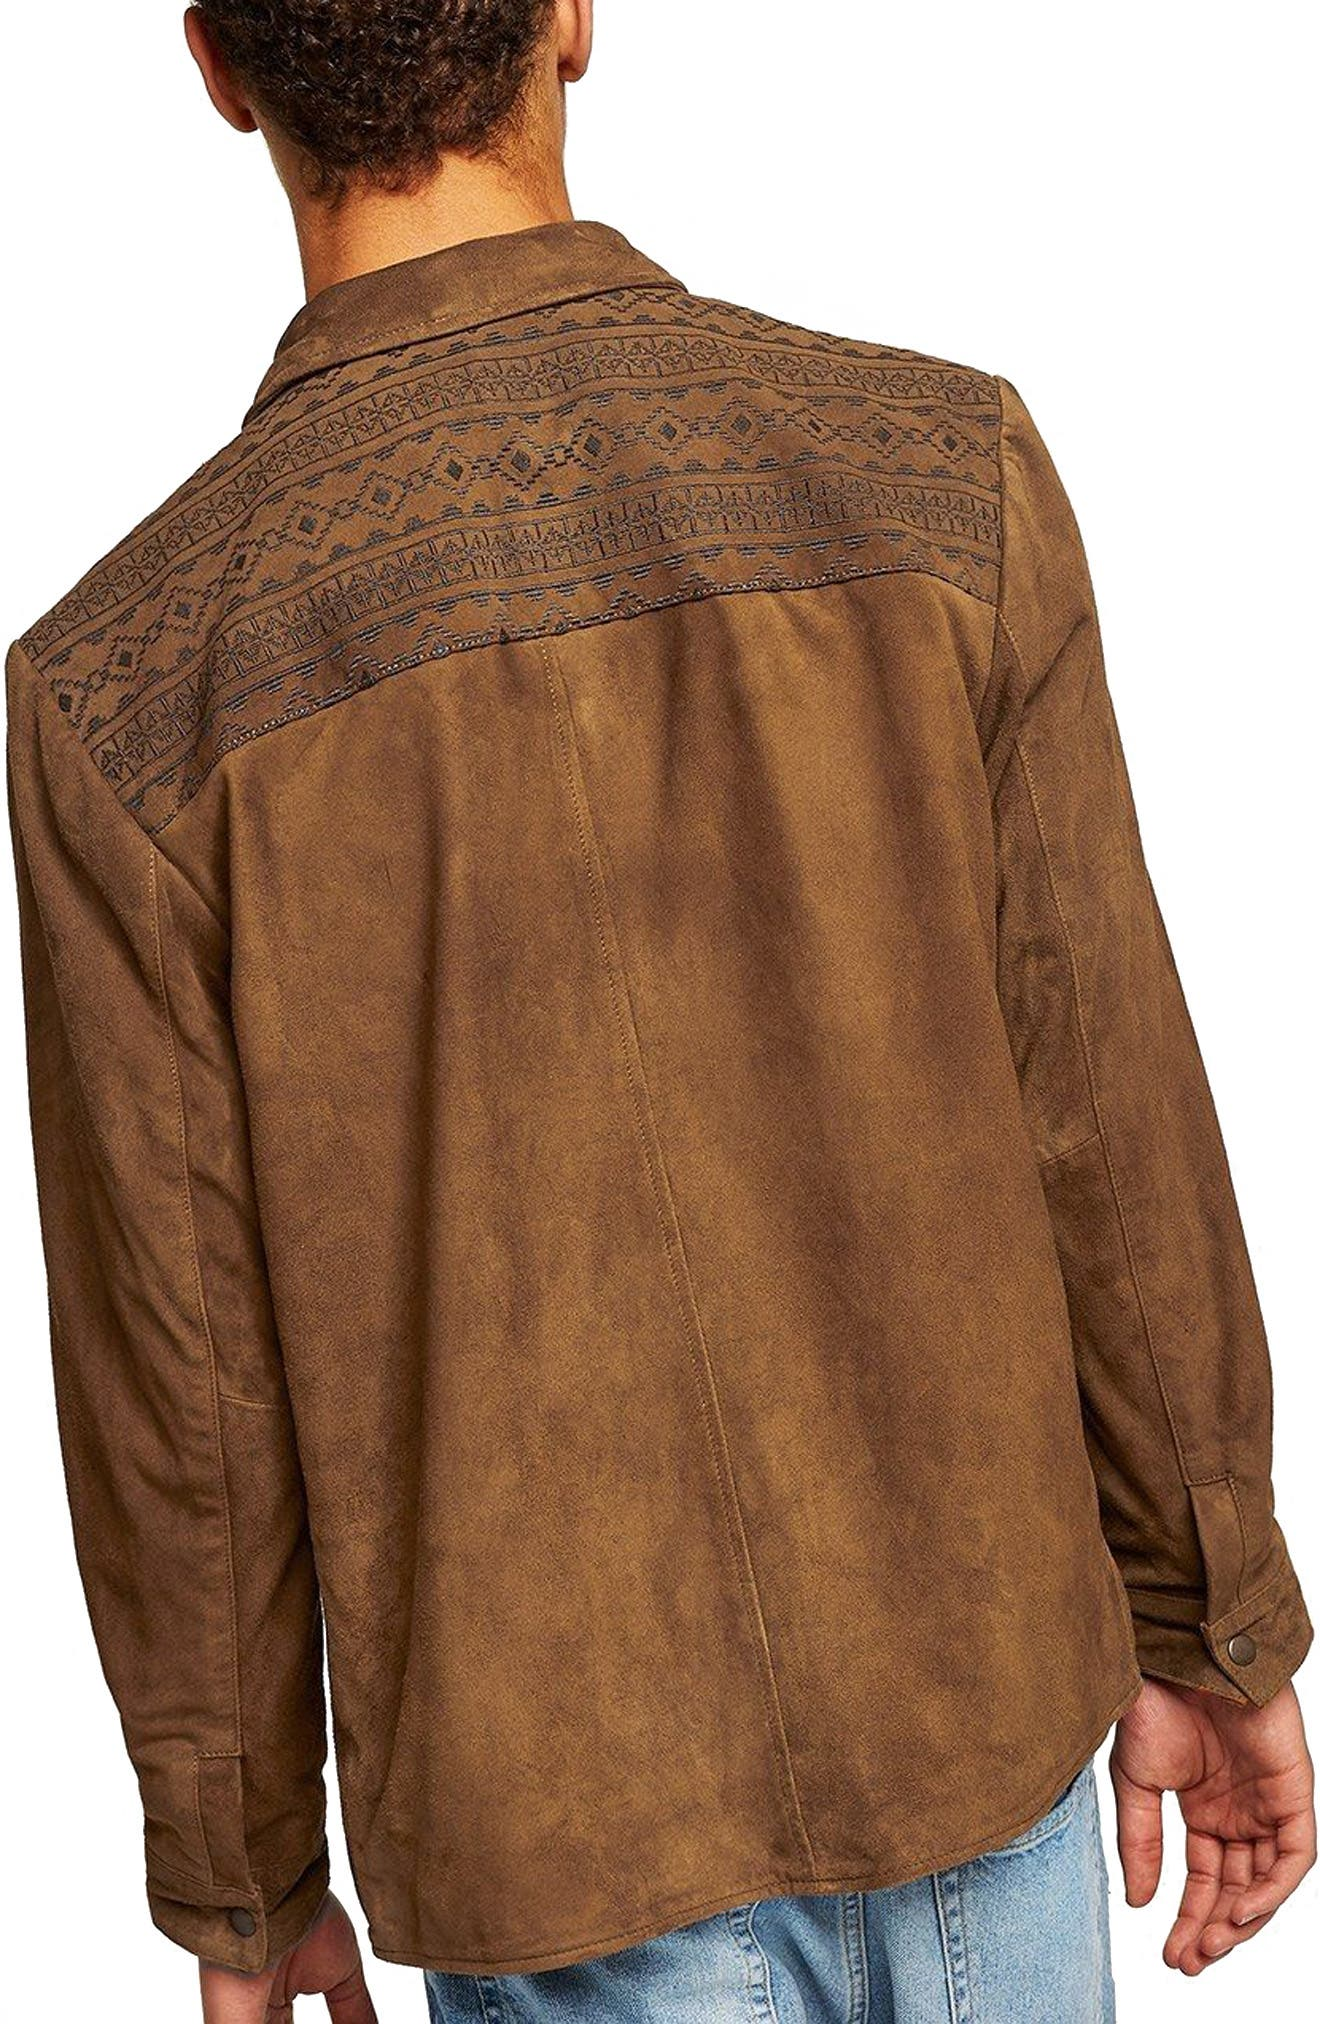 Embroidered Suede Jacket,                             Alternate thumbnail 2, color,